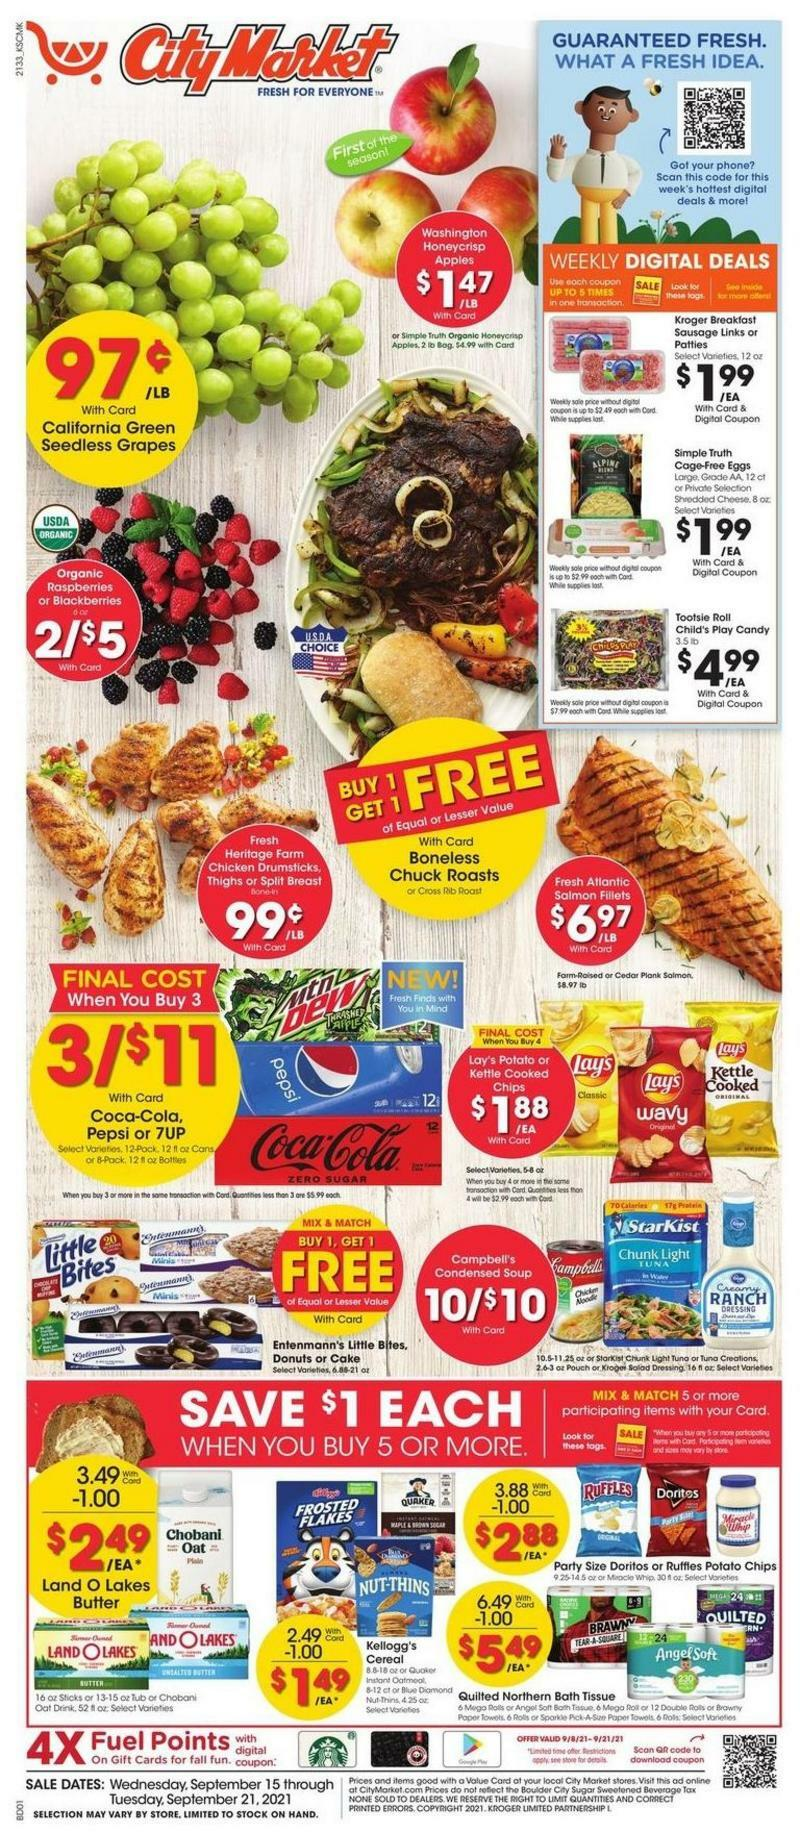 City Market Weekly Ad from September 15